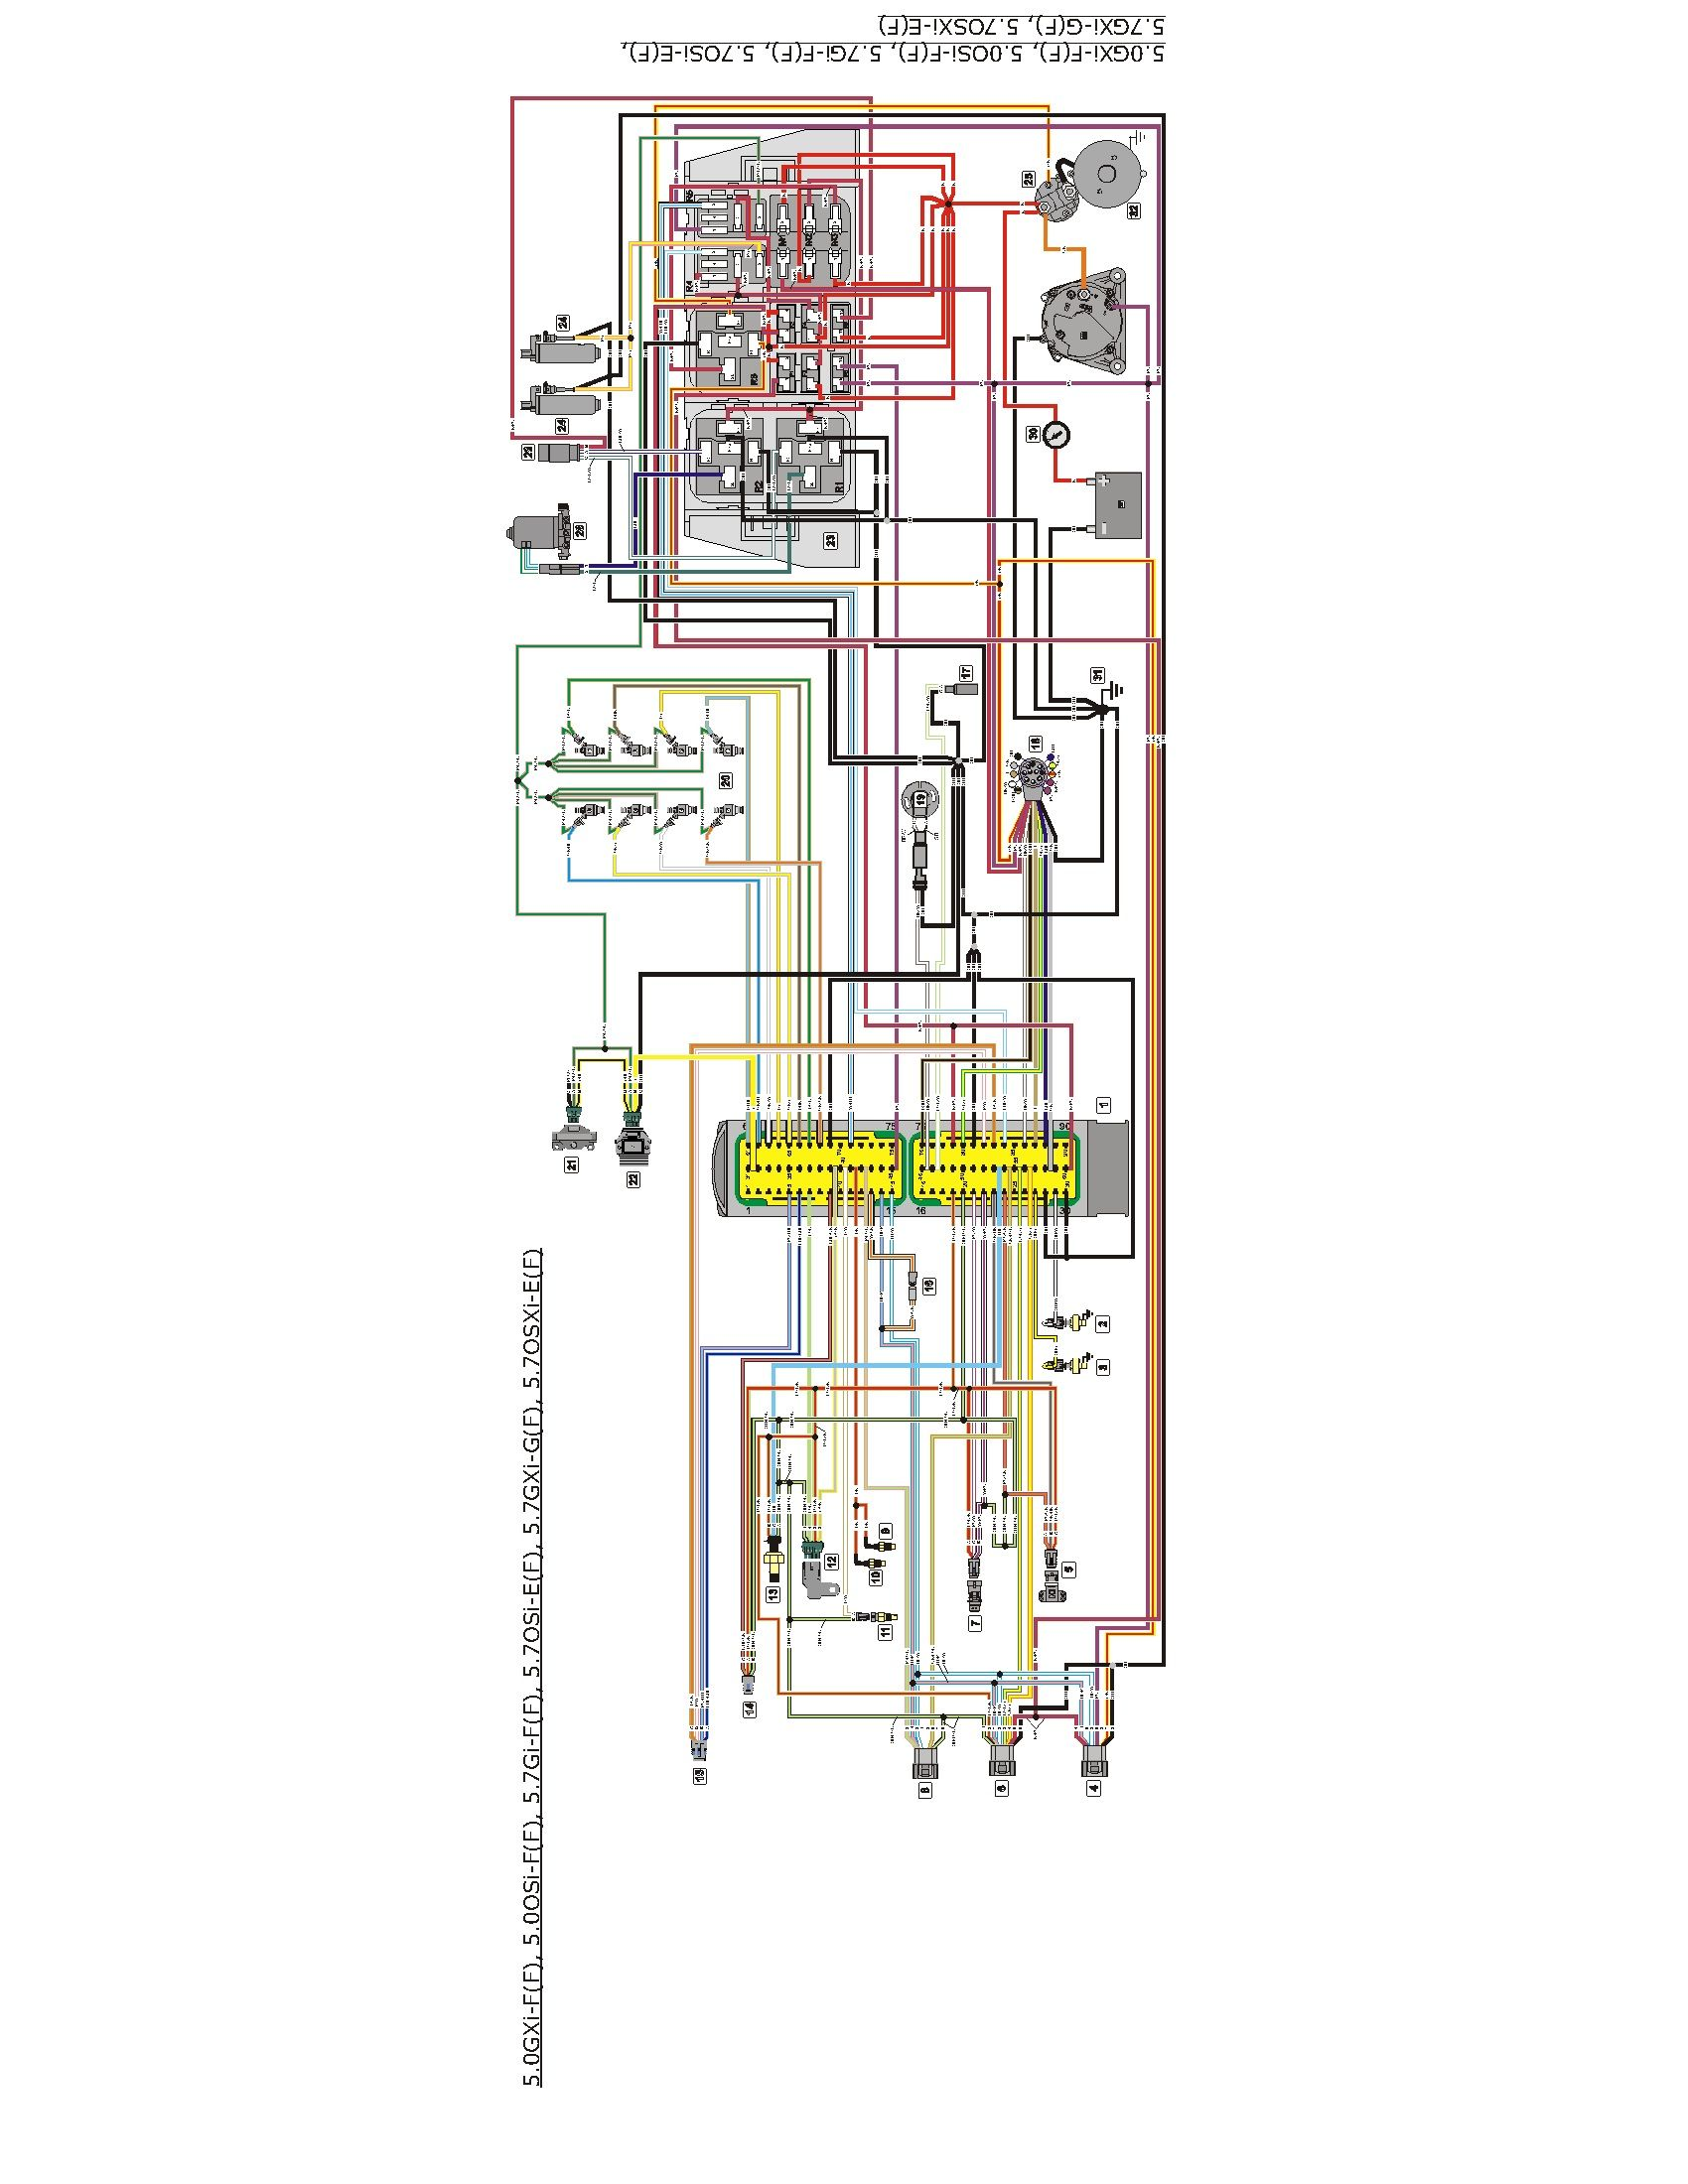 38e0106861e0fe47e508530985b32839 volvo penta 5 7 wiring diagram westerbeke wiring diagrams \u2022 wiring volvo engine wiring harness at eliteediting.co